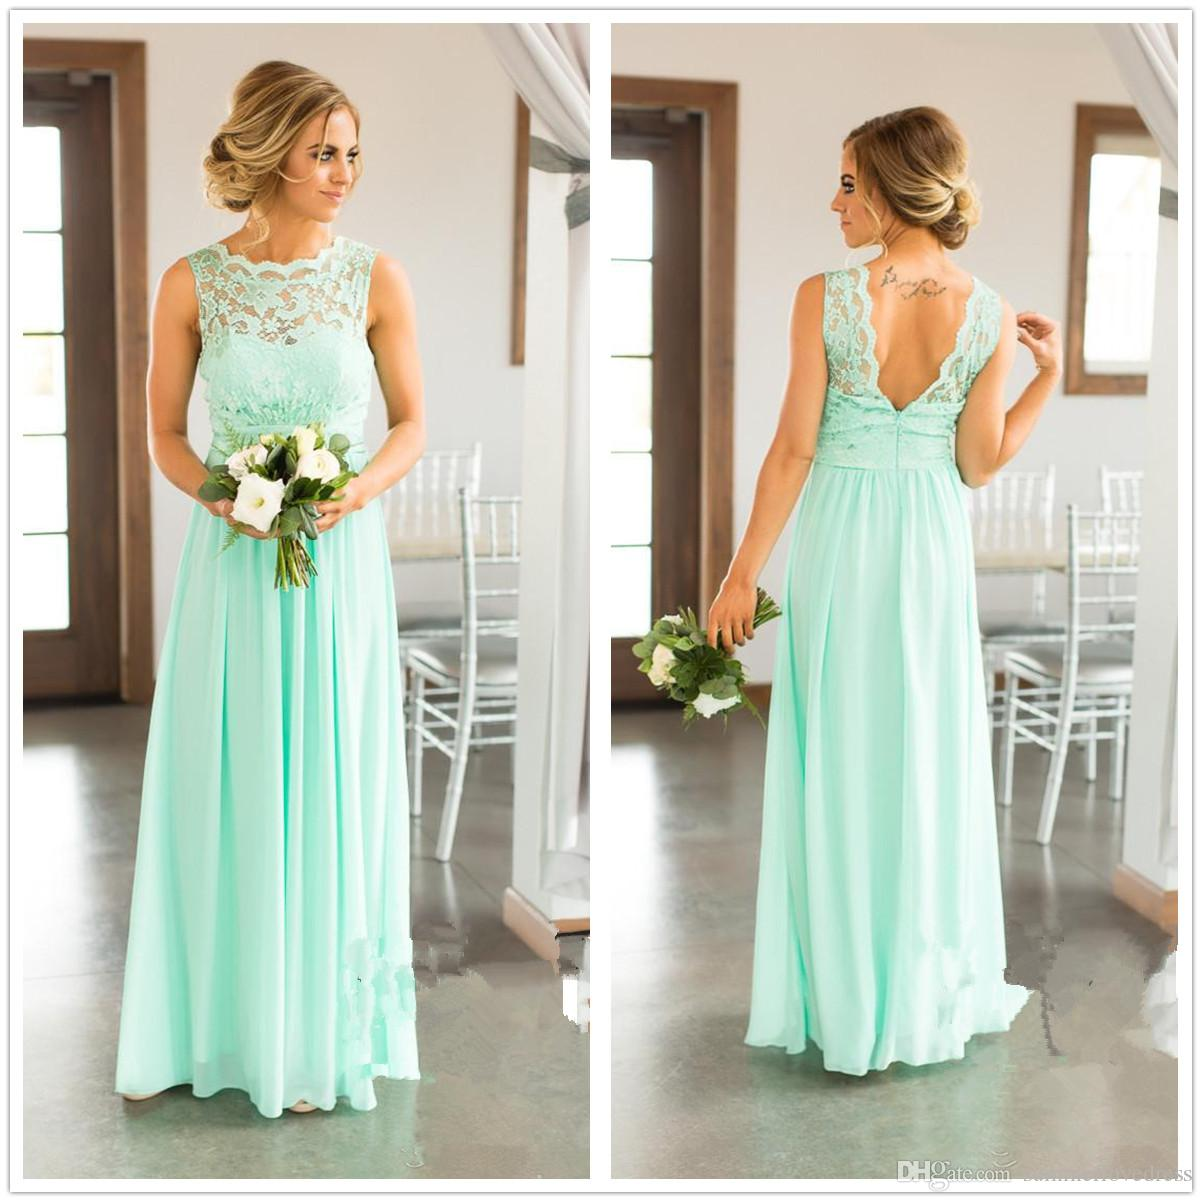 2c0b5108bc951 Elegant 2018 Mint Chiffon Country Long Bridesmaid Dresses Sleeveless Lace  Top Floor Length Evening Party Prom Dresses Canada 2019 From  Summerlovedress, ...